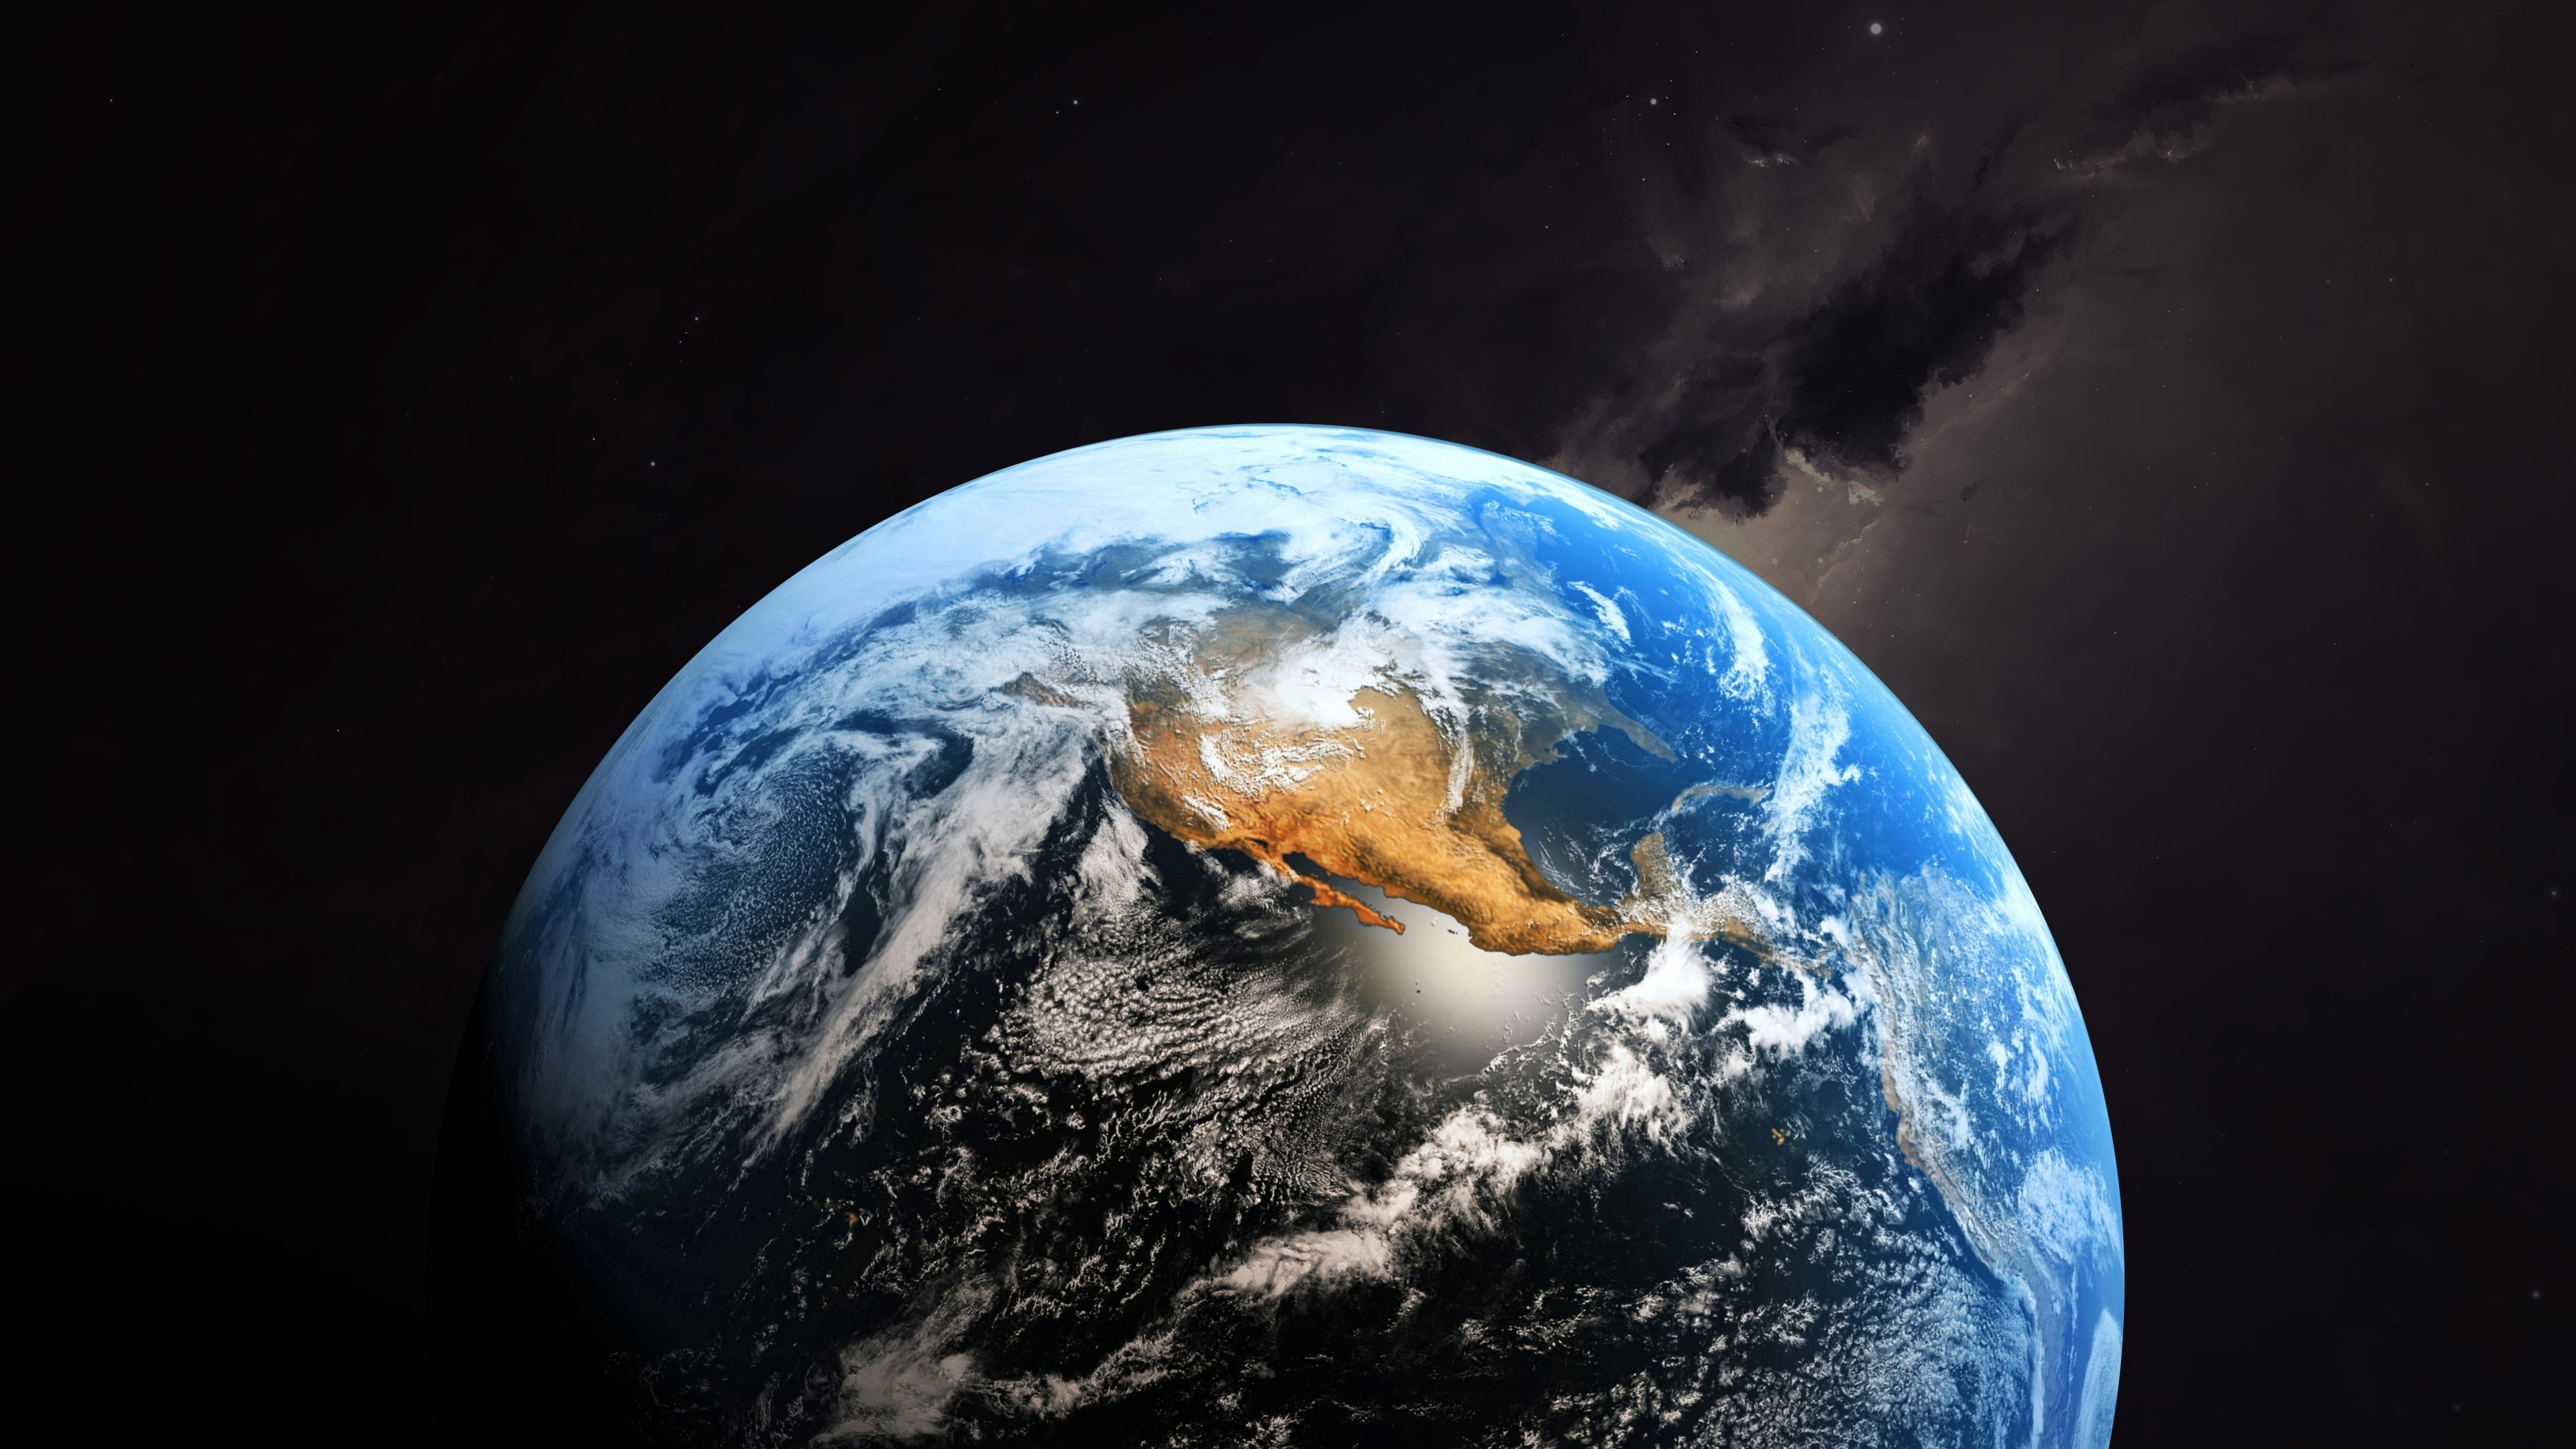 Wallpapers Of Earth Posted By Ryan Cunningham